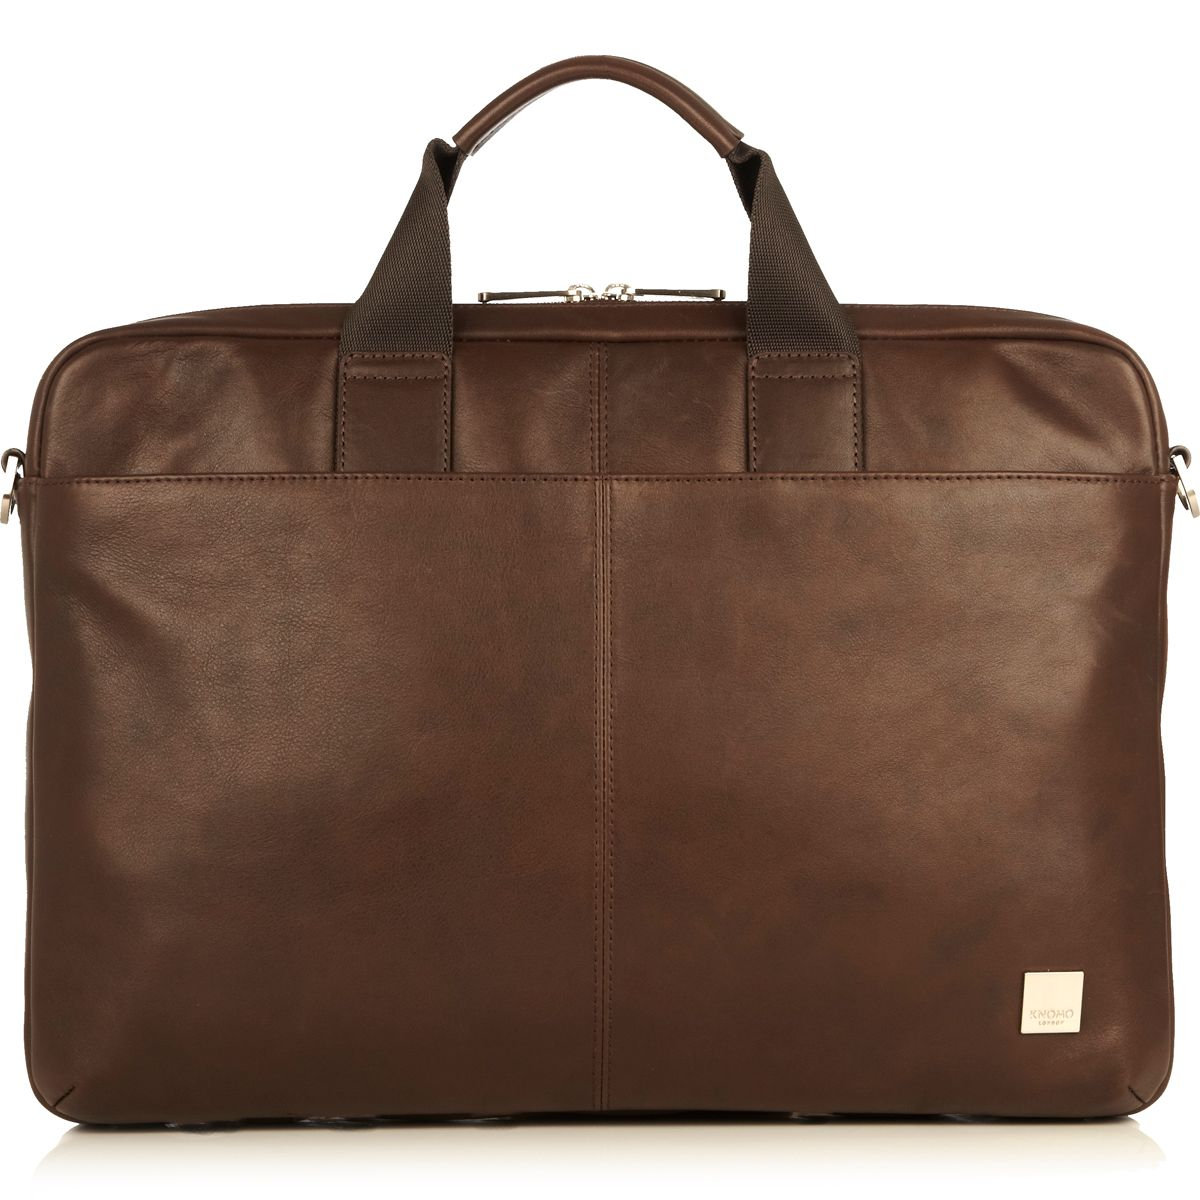 You searched for: leather laptop bag men. Good news! Etsy has thousands of handcrafted and vintage products that perfectly fit what you're searching for. Discover all the extraordinary items our community of craftspeople have to offer and find the perfect gift for your loved one (or yourself!) today.